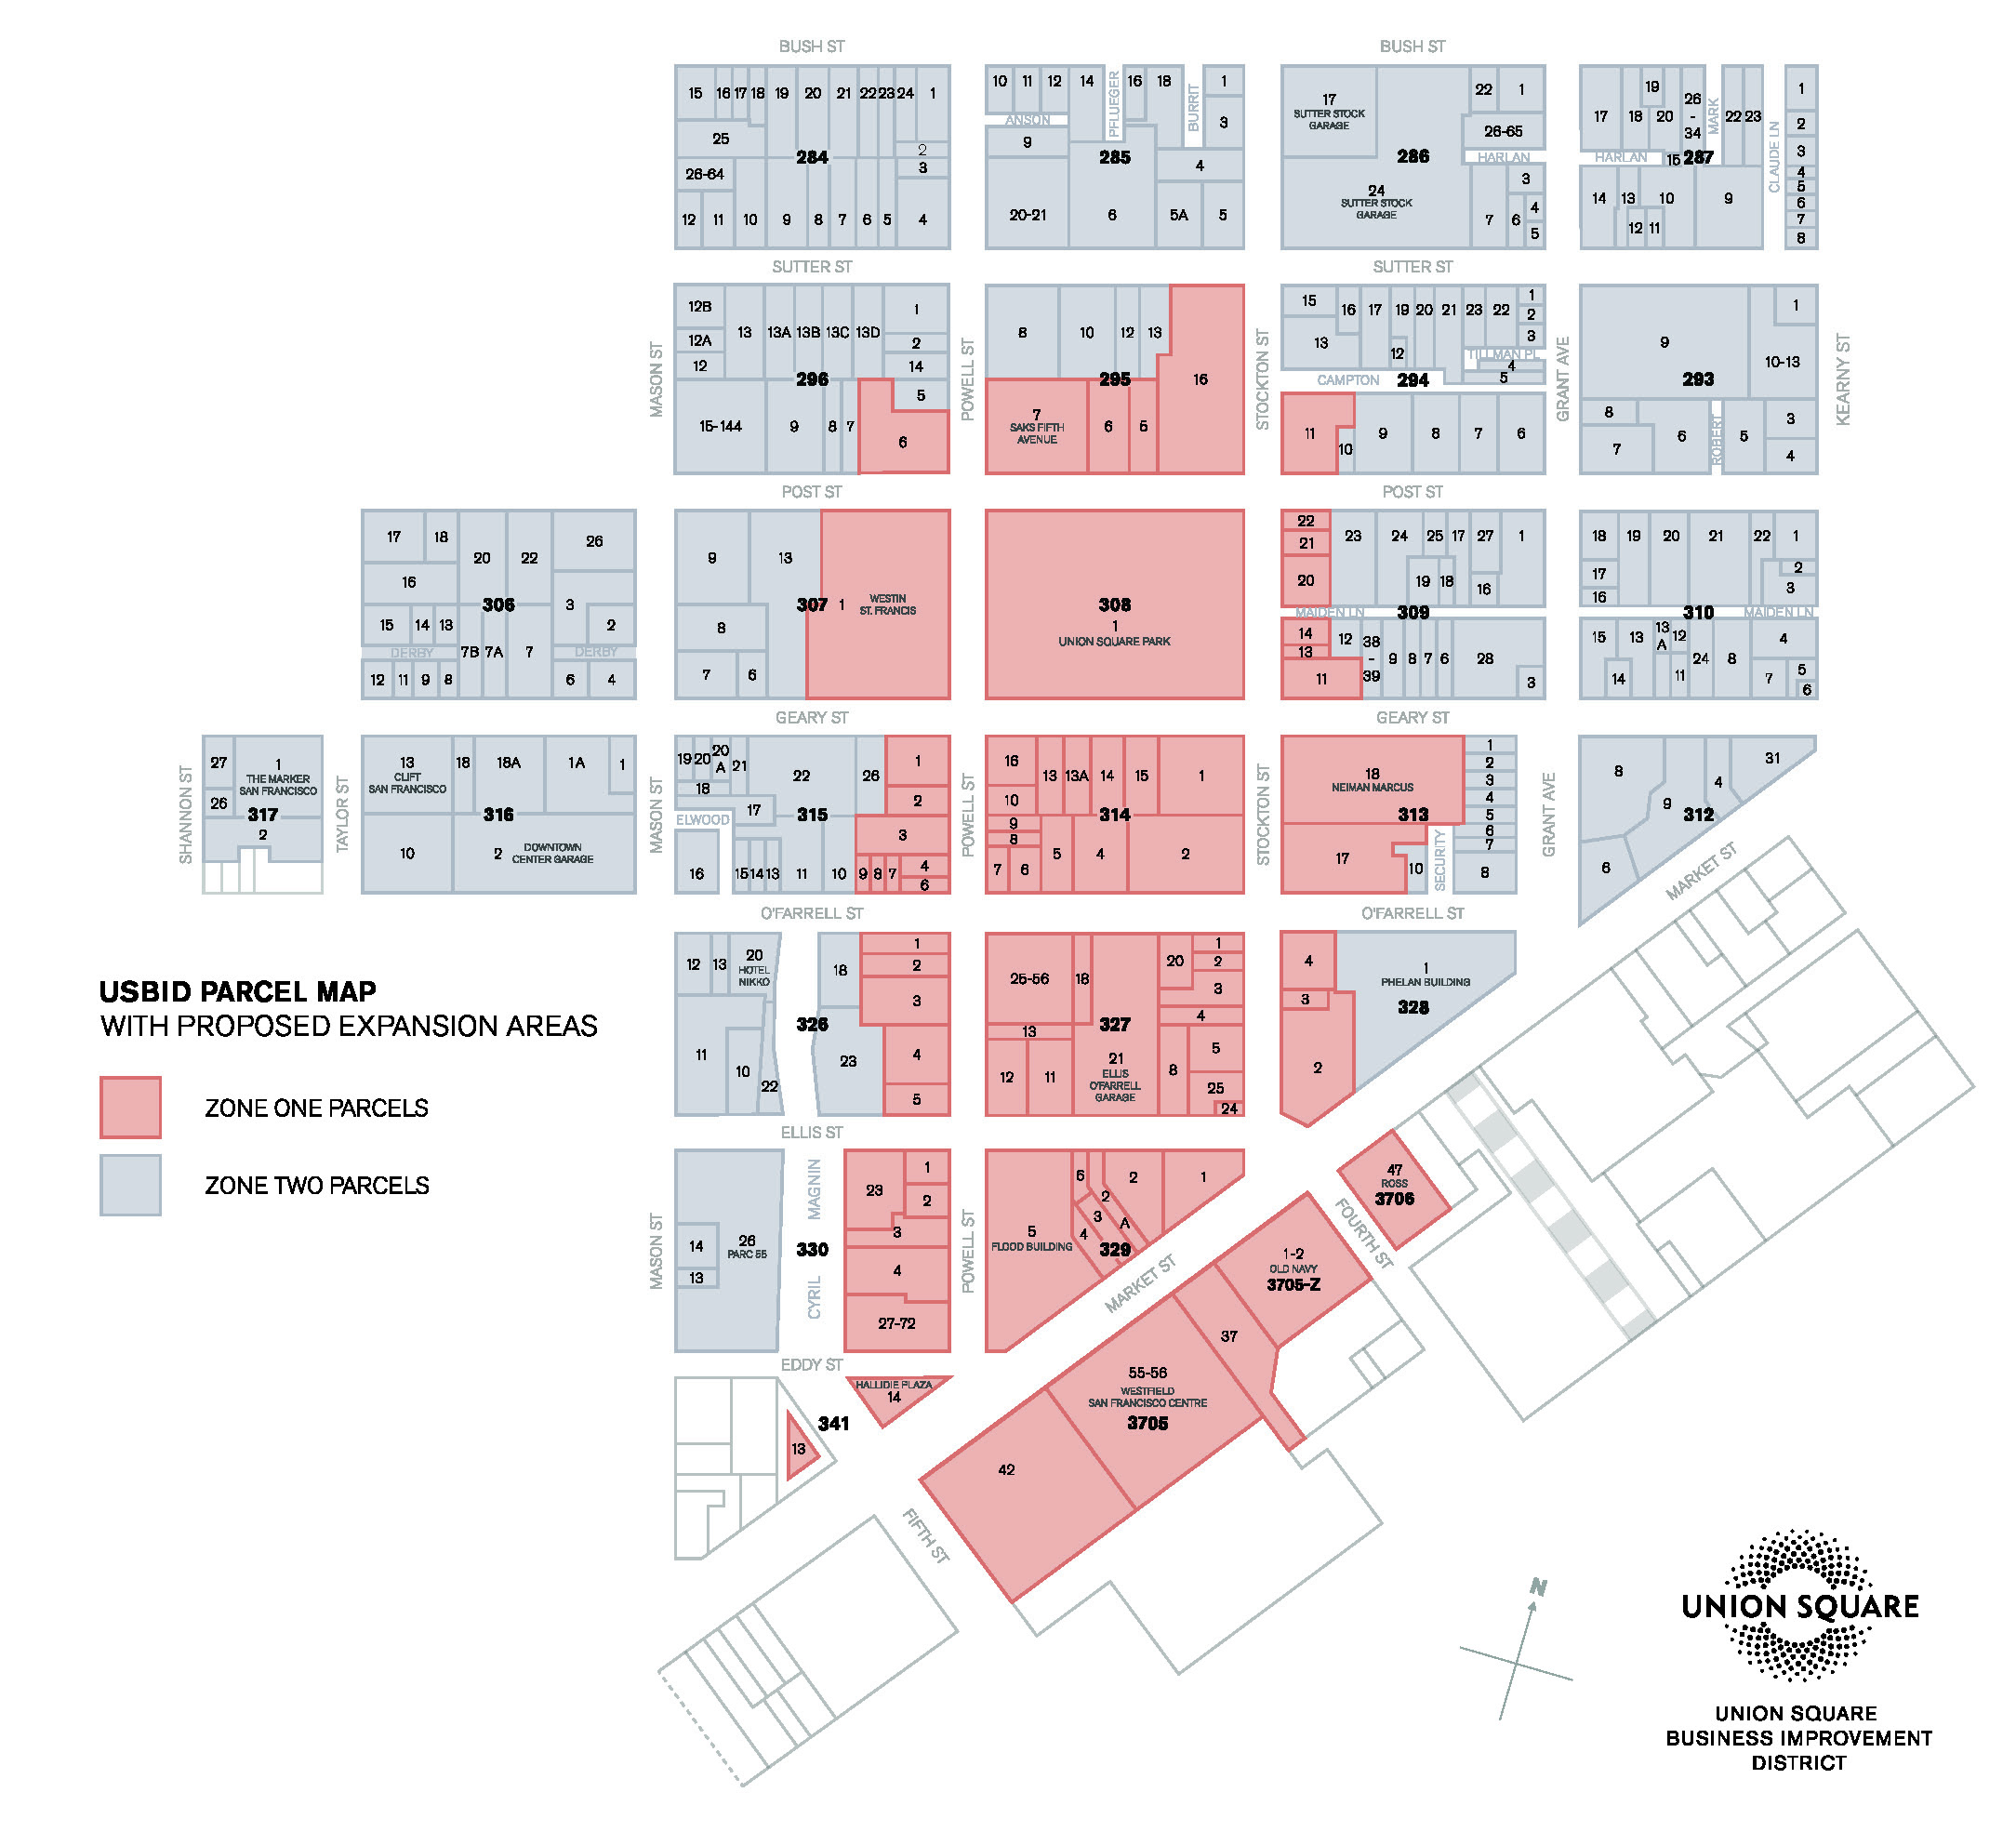 Union Square BID's District Boundary Map with Service Zones Post-Renewal